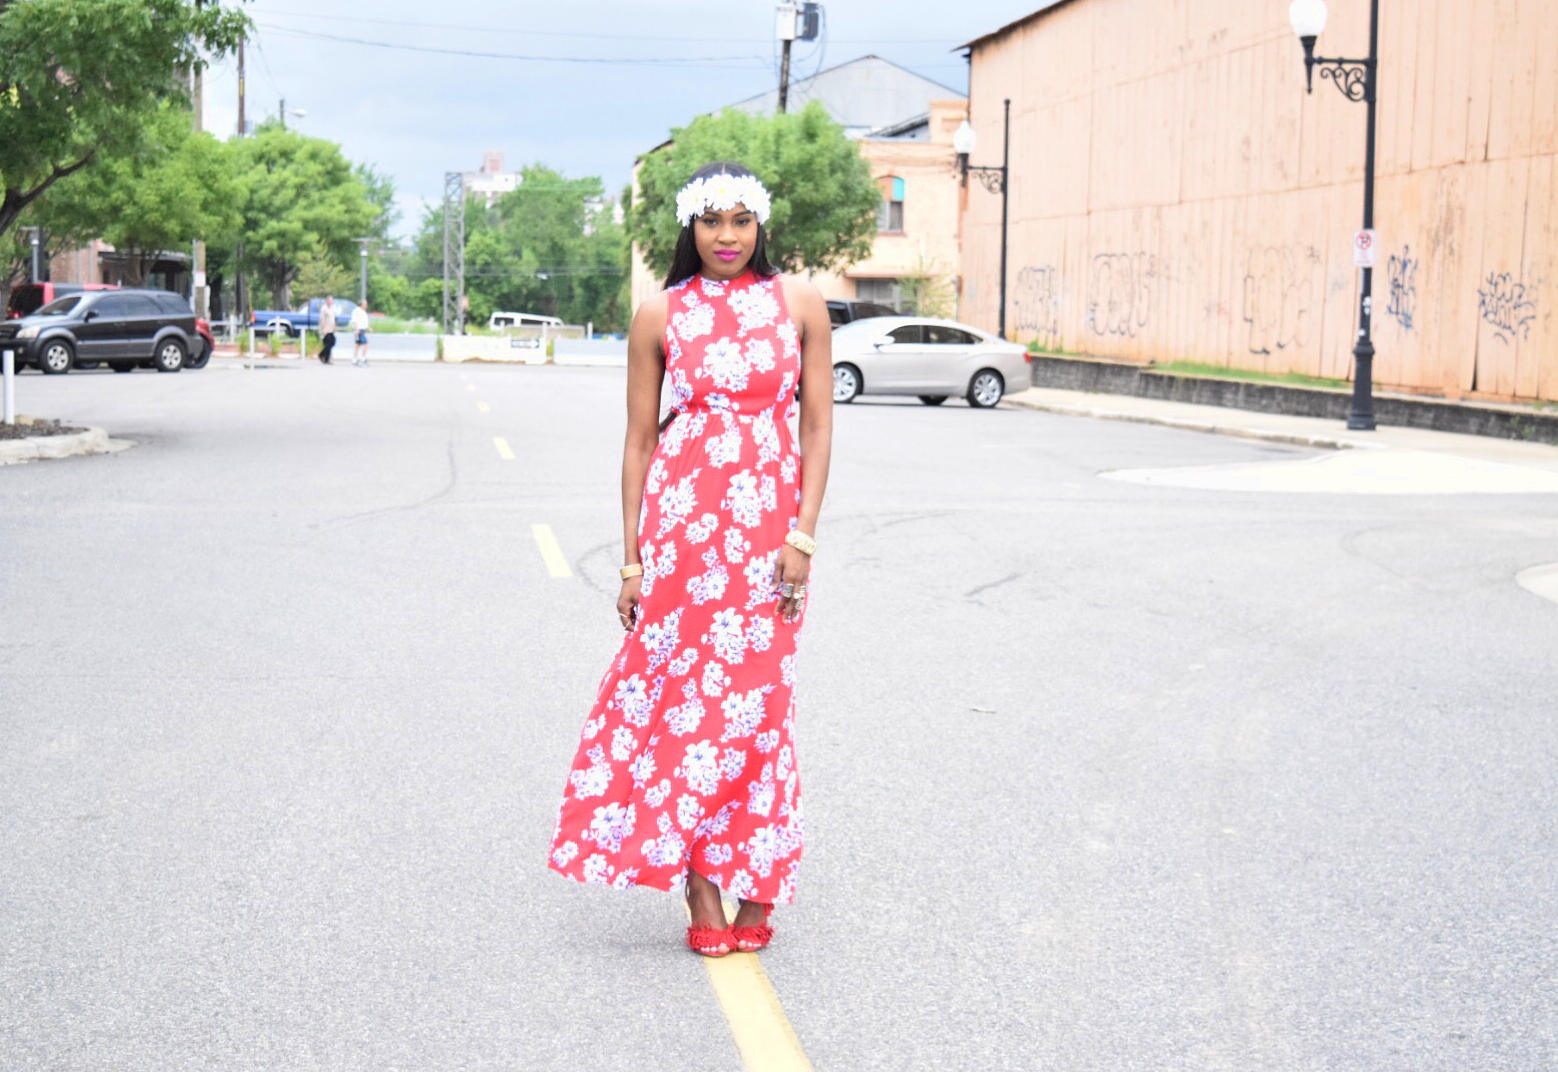 Style-files-forever-21-red-maxi-floral-maxi-dress-criss-cross-back-strap-forever21-daisy-headband-red-justfab-fringe-sandals-Boohoo-Zoe-Square-Oversized Ombre-Frame Aviator-sungalsses-Oohlalablog-5